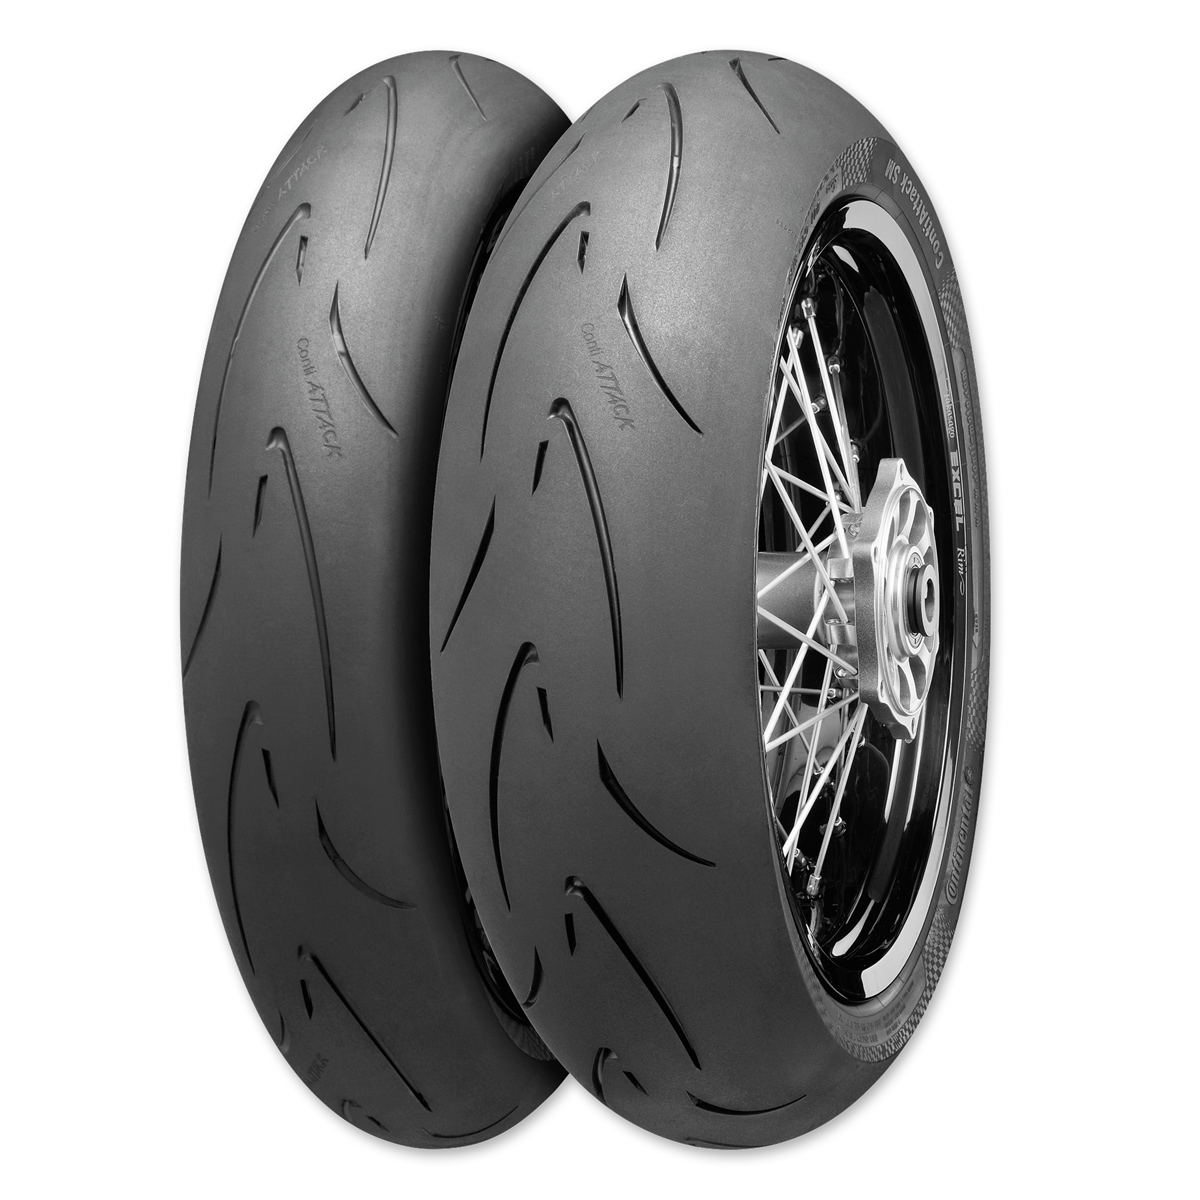 Continental Attack SM 120/70HR17 Front Tire